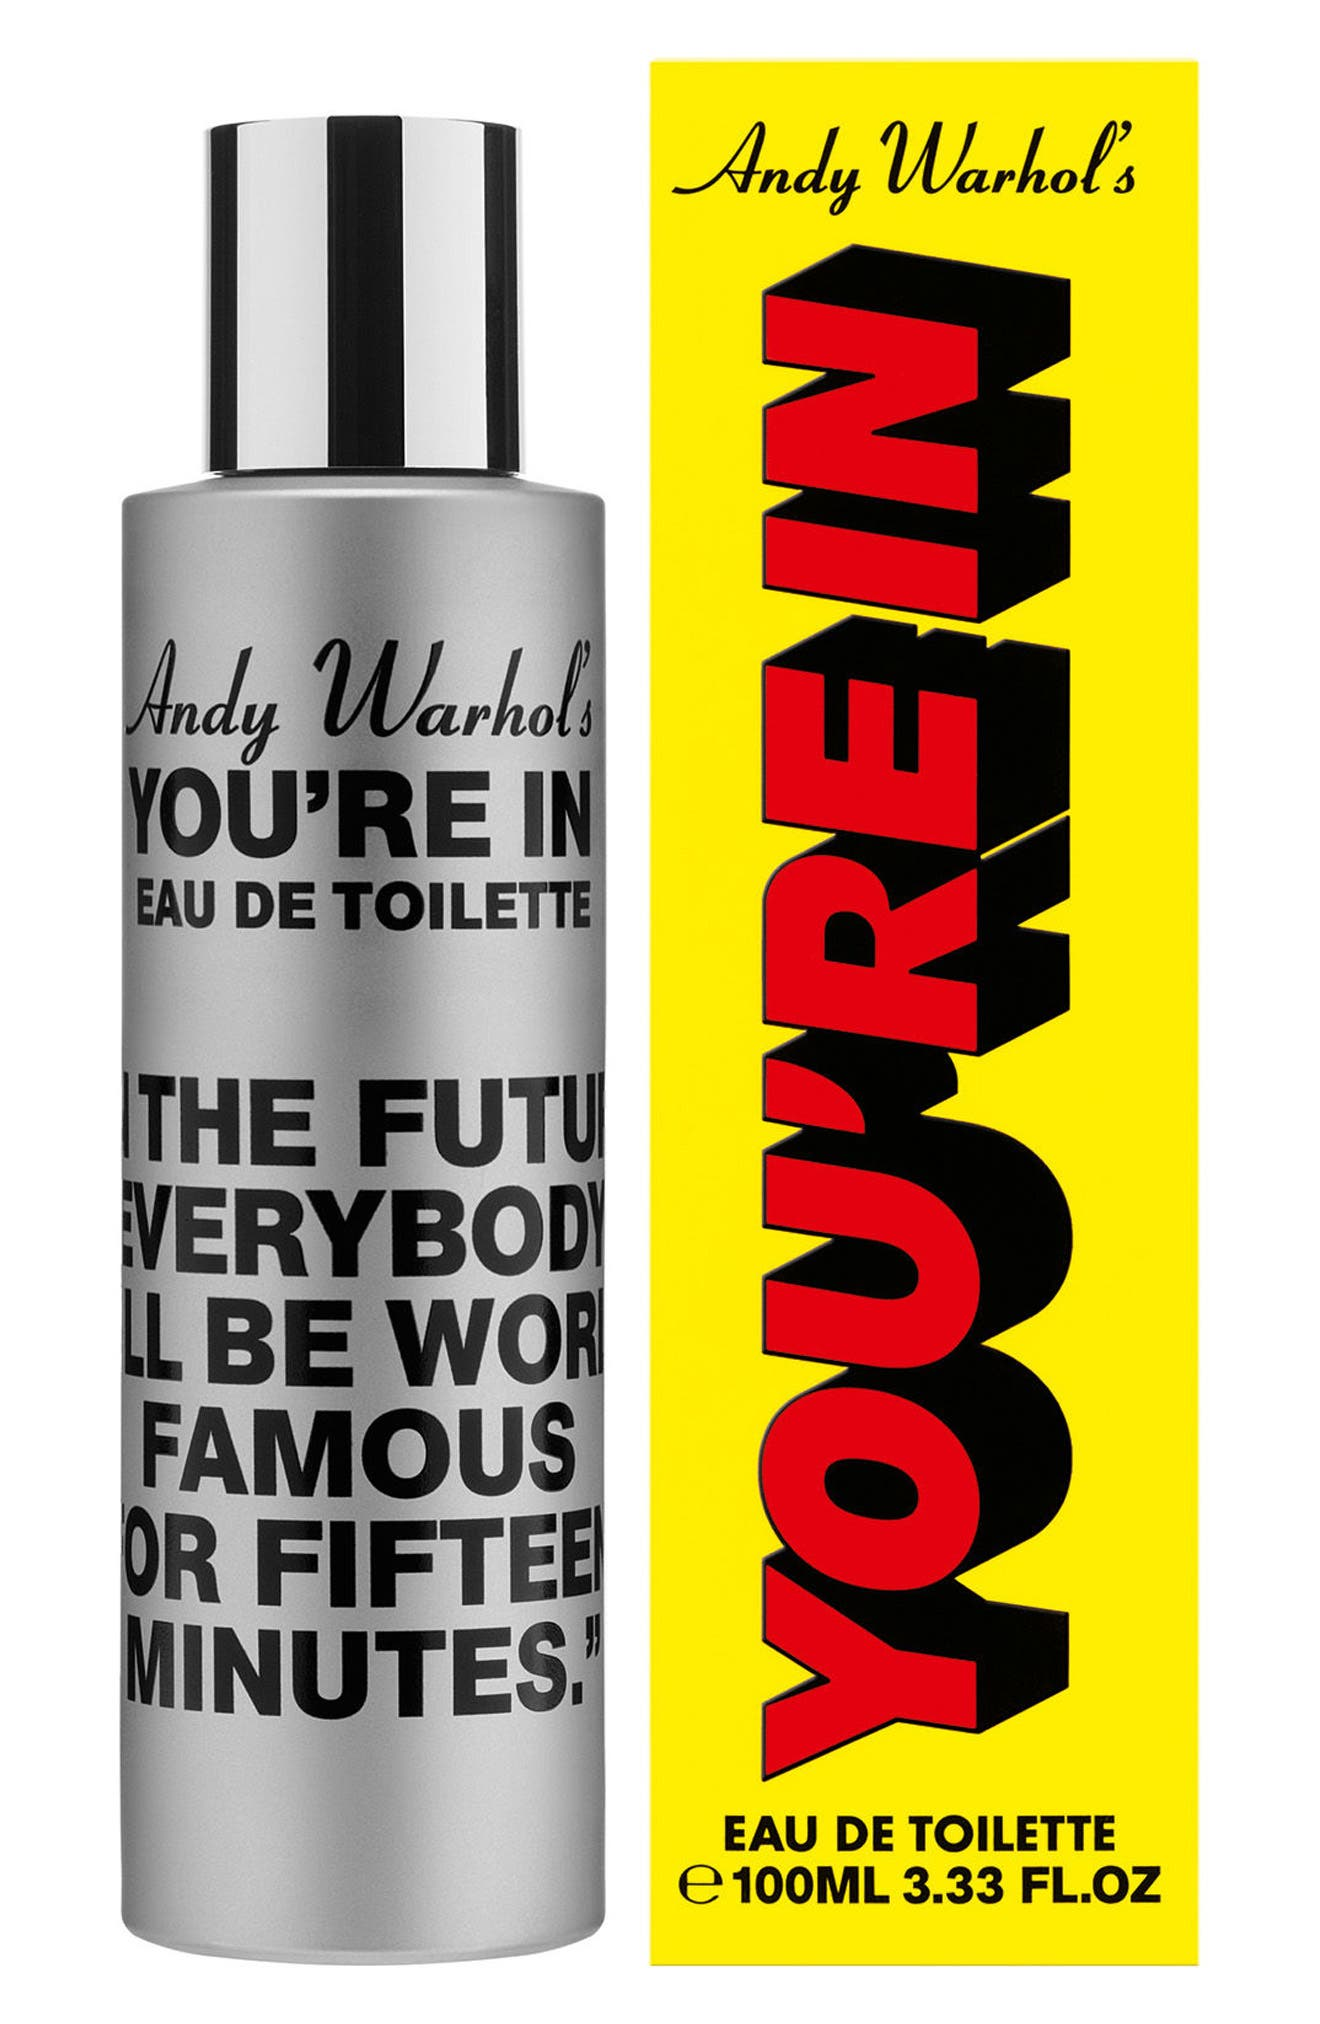 COMME DES GARÇONS, Andy Warhol You're In Unisex Eau de Toilette, Alternate thumbnail 2, color, IN THE FUTURE